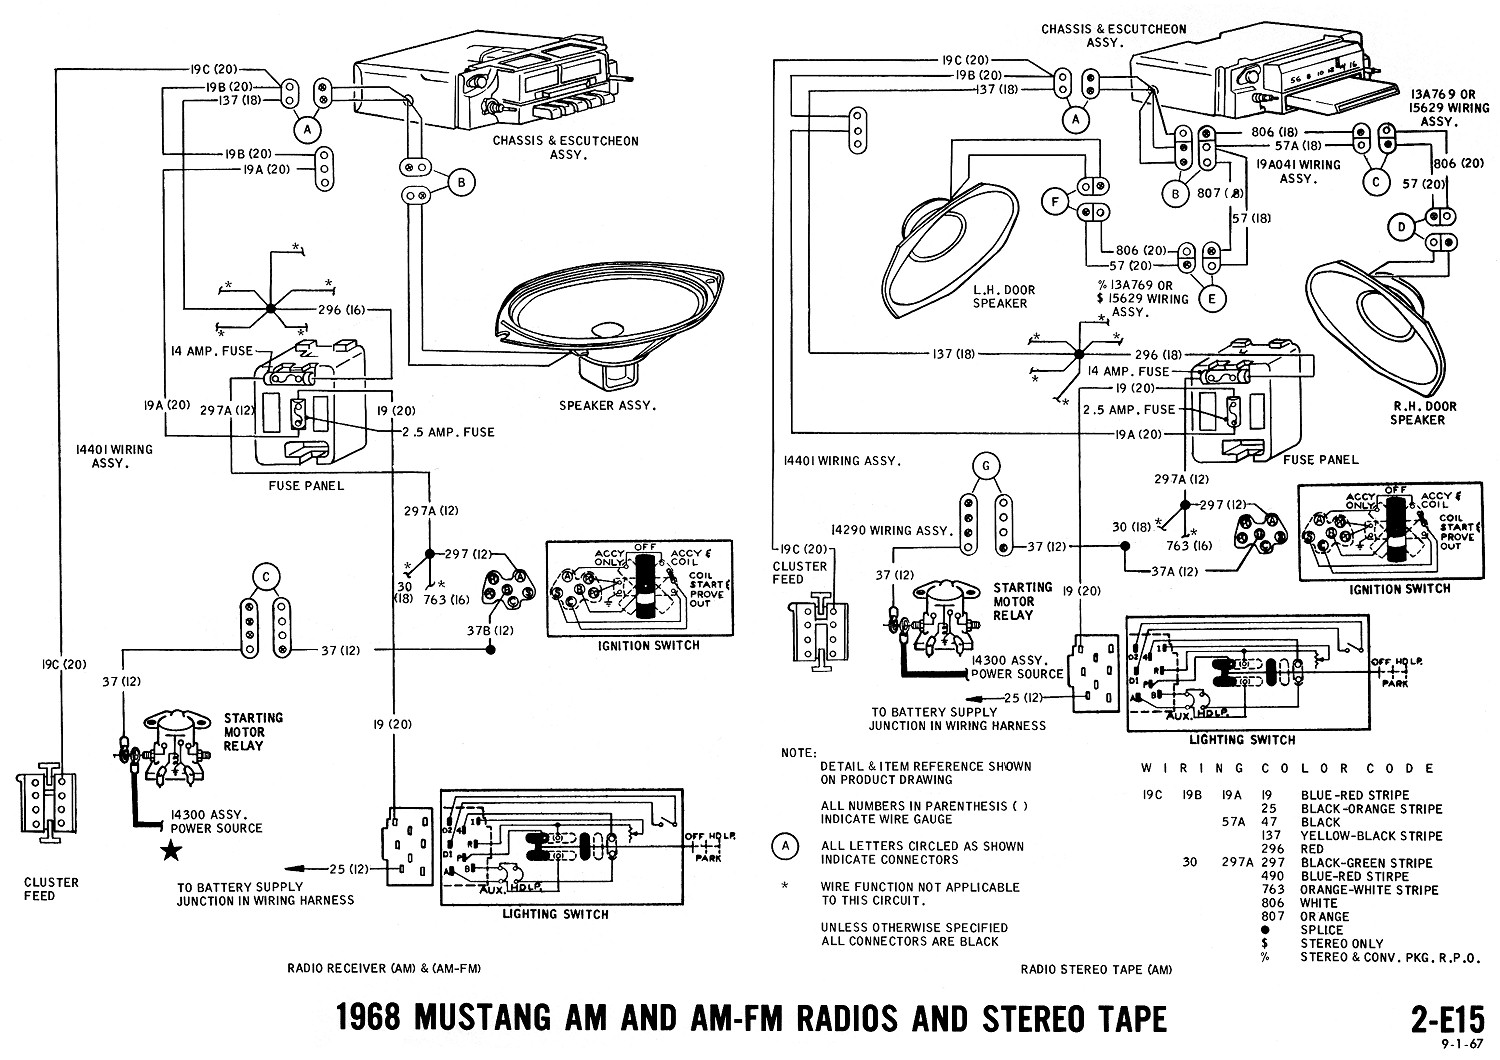 E15 1968 mustang wiring diagrams evolving software 2000 mustang wiring diagram at virtualis.co